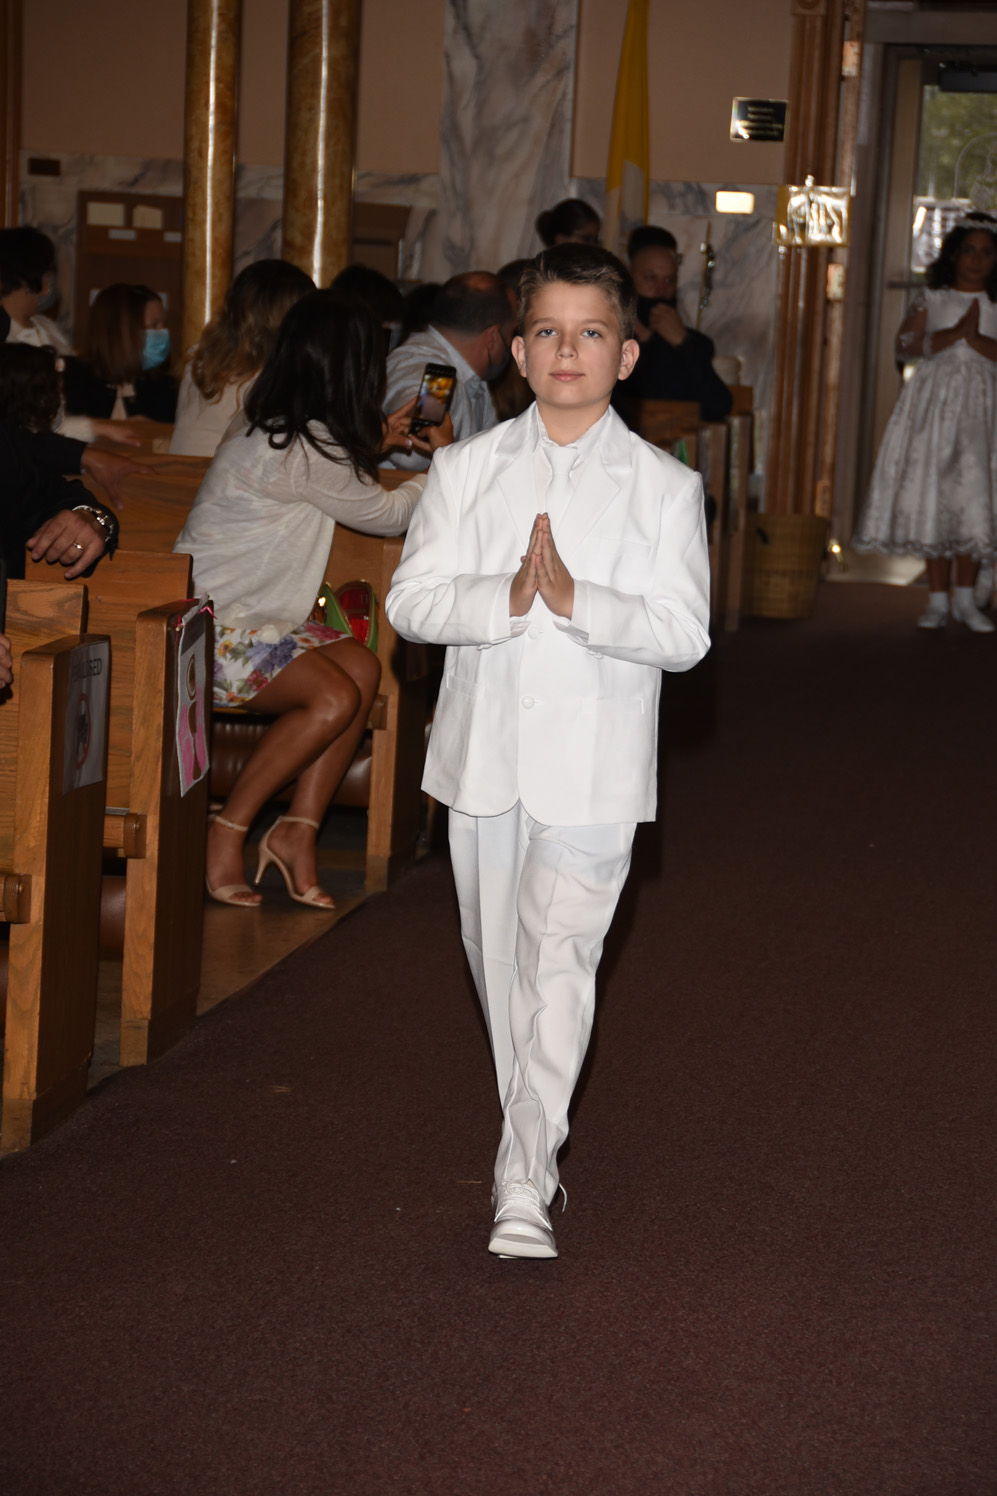 FIRST-COMMUNION-MAY-2-2021-1001001165